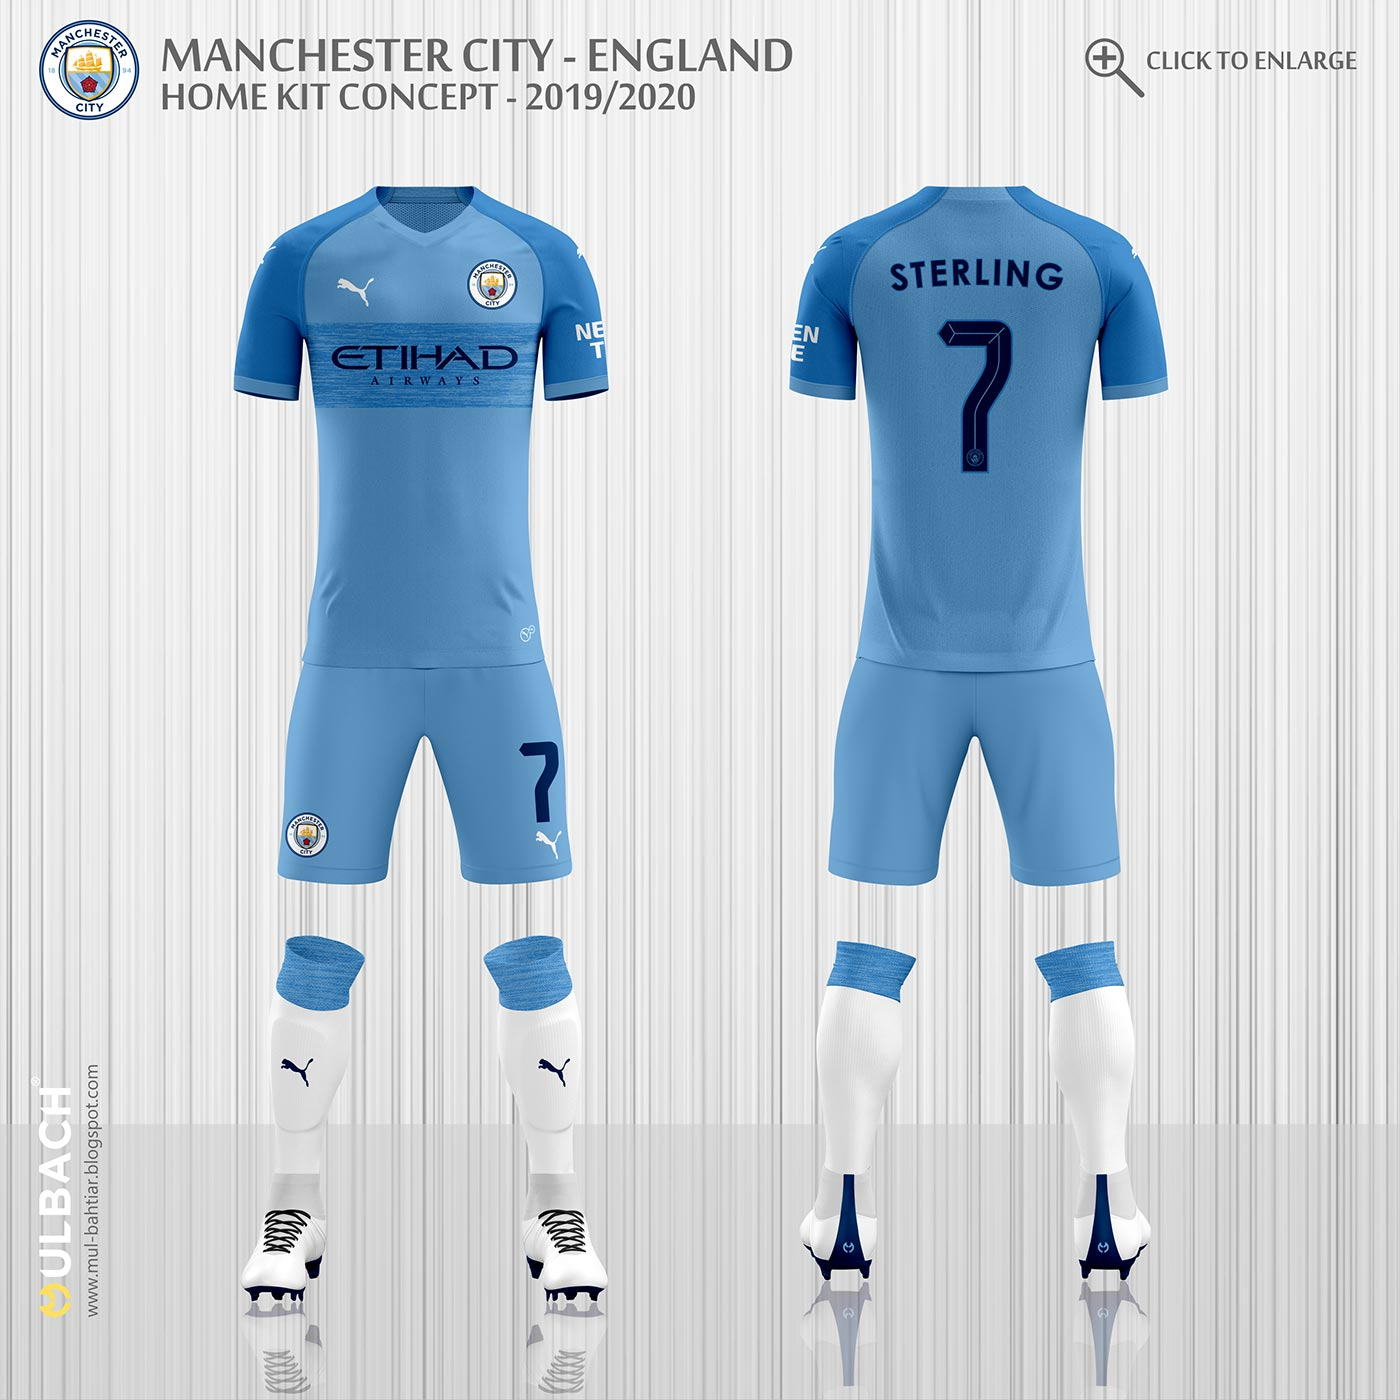 3260d5b40 Do you look forward to see the real Puma Manchester City 2019-20 home kit   Let us know in the comments below.